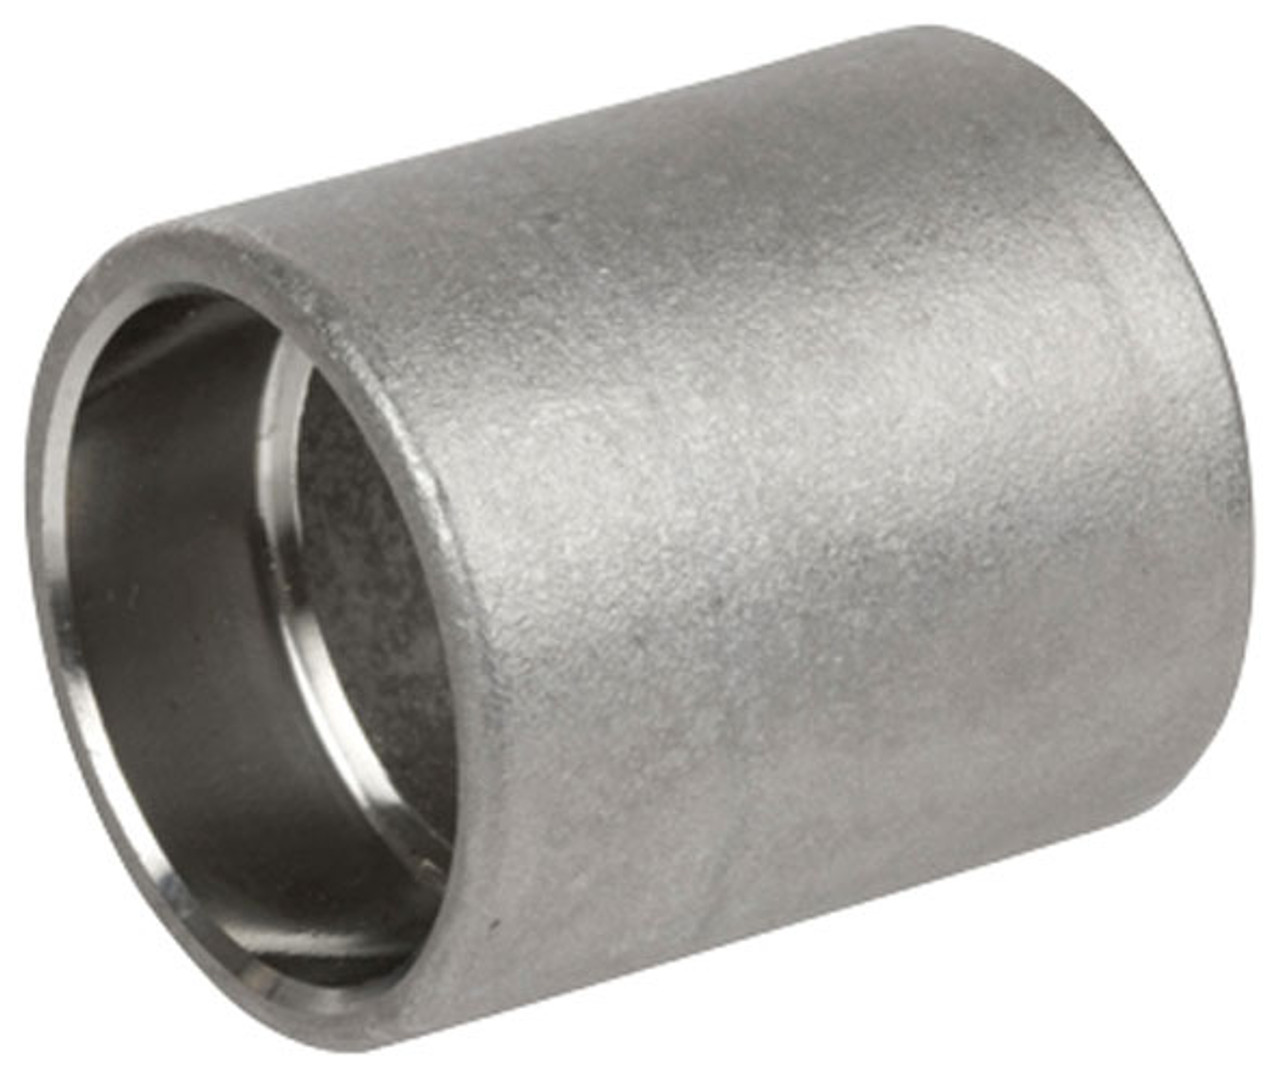 Smith cooper cast stainless steel in full